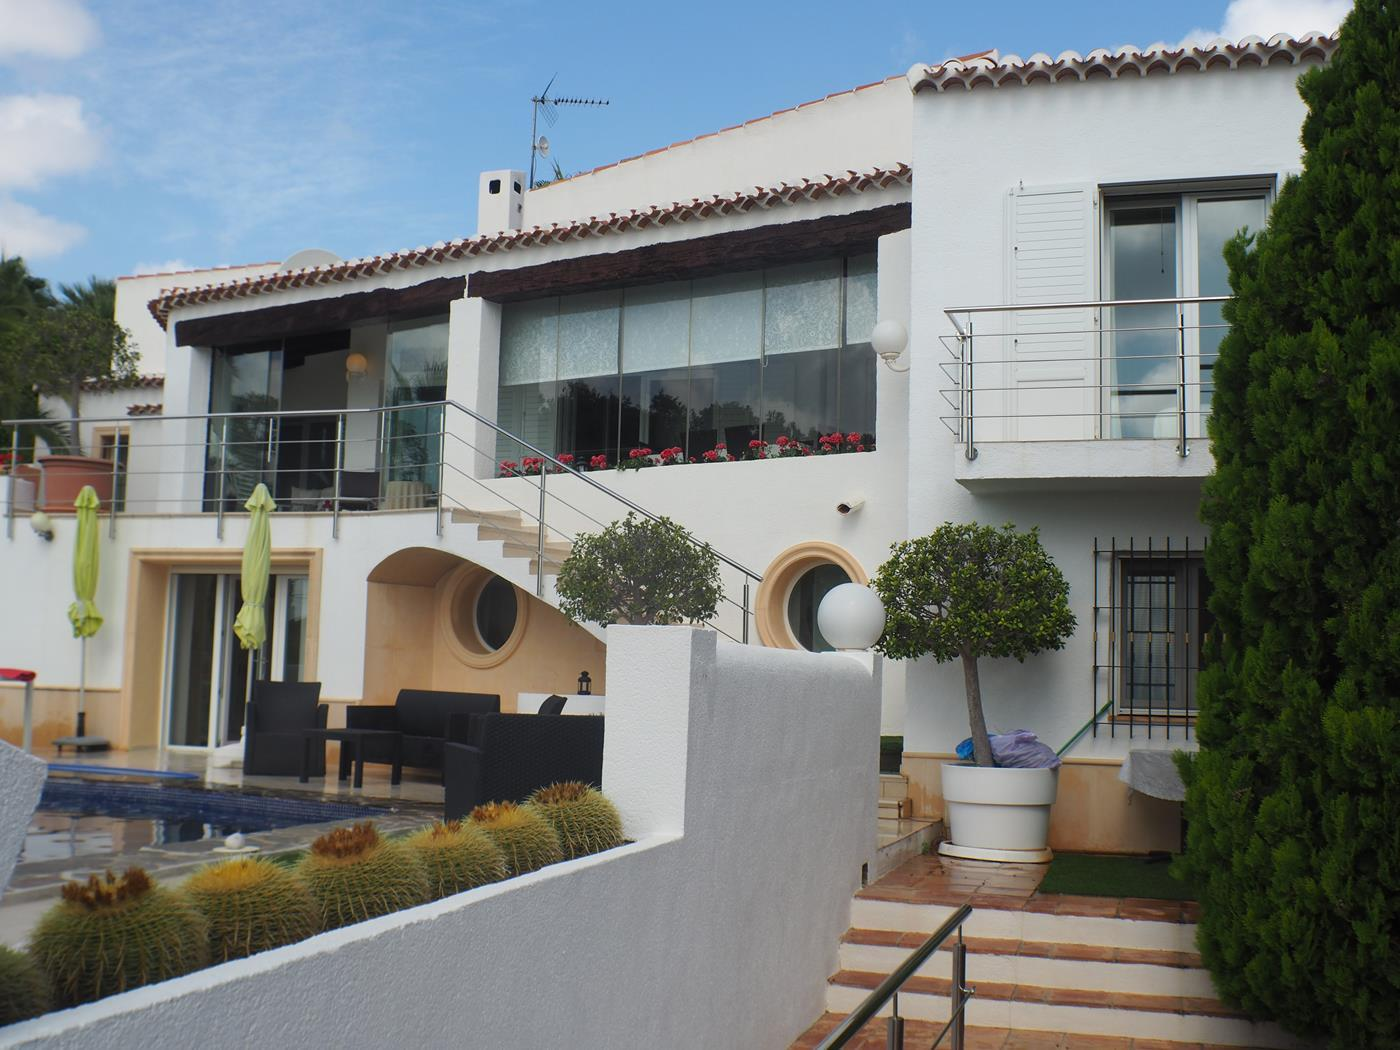 Fotogallerij - 5 - Exceptional homes in the Costa Blanca. Unparalleled Service. Exceptional properties in the Costa Blanca